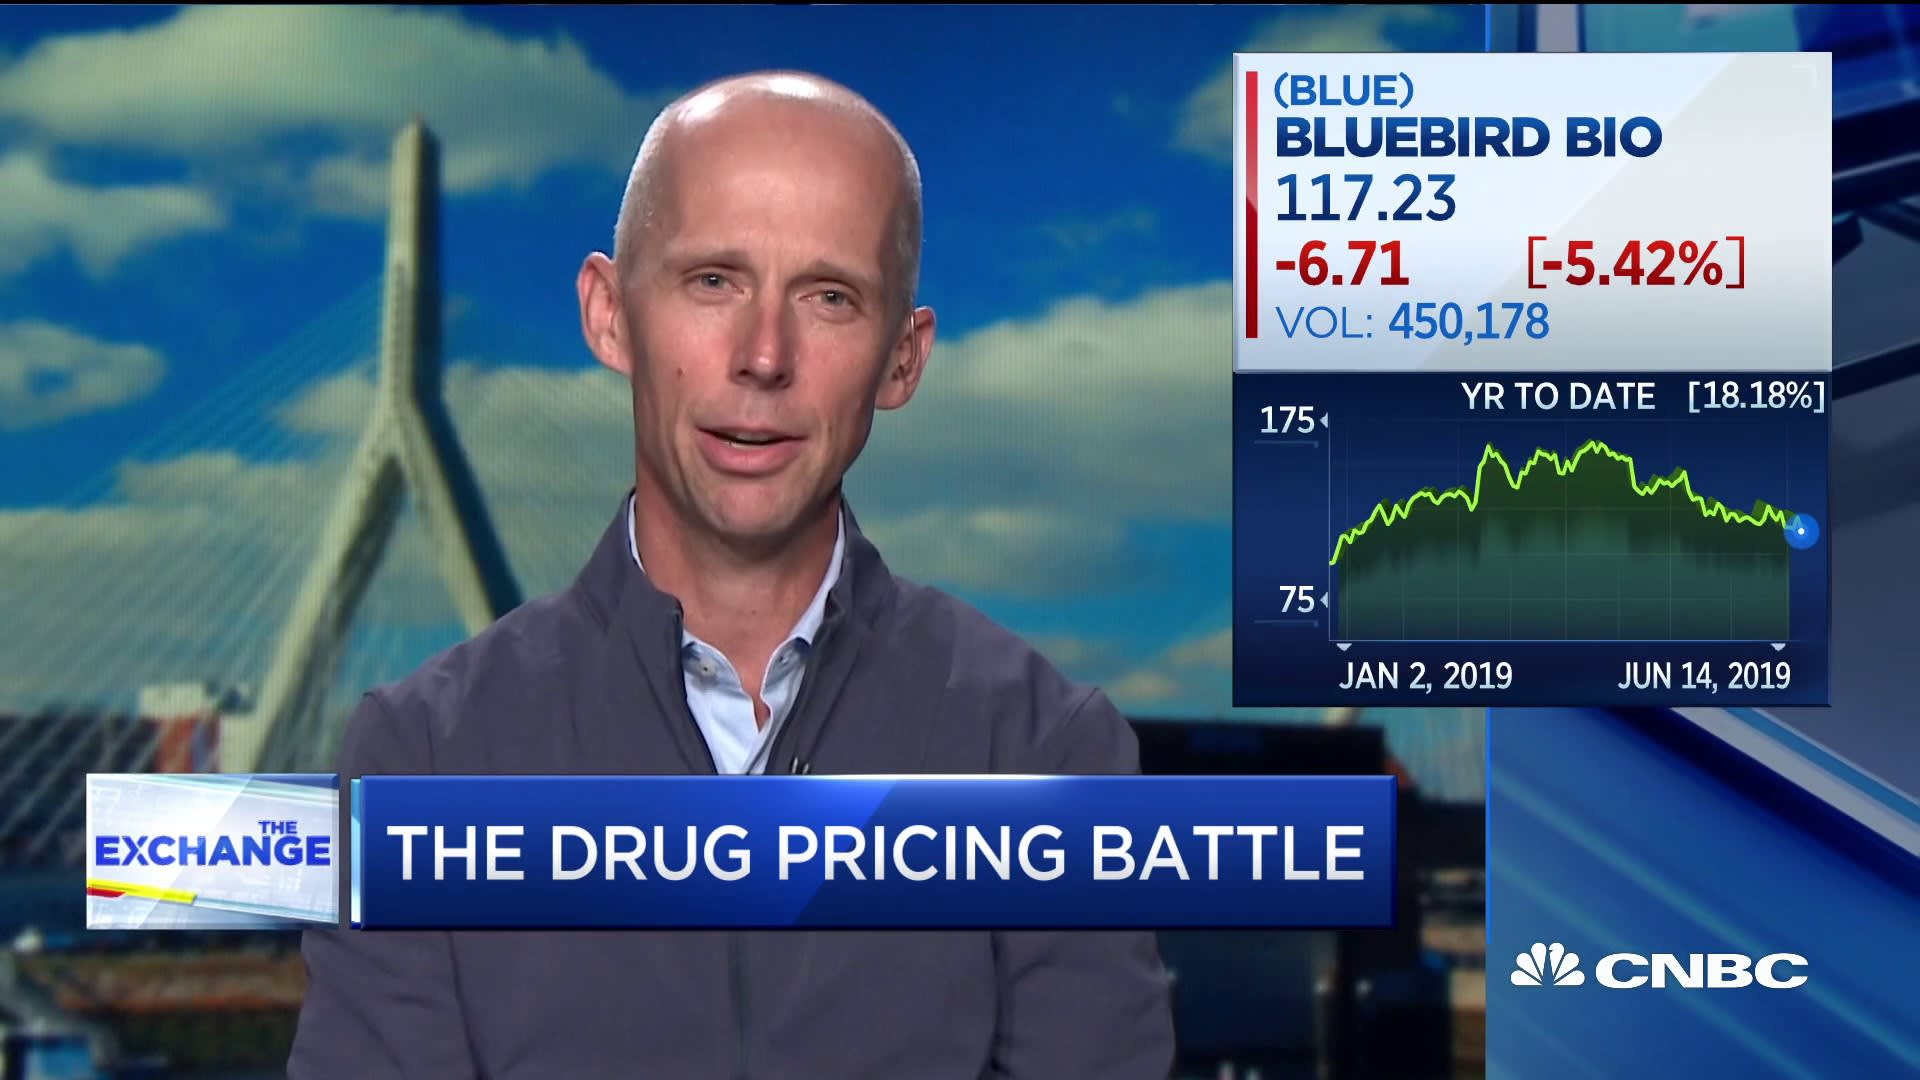 Bluebird Bio CEO defends $1.8 million price for gene therapy — 'It's really thinking about it differently'